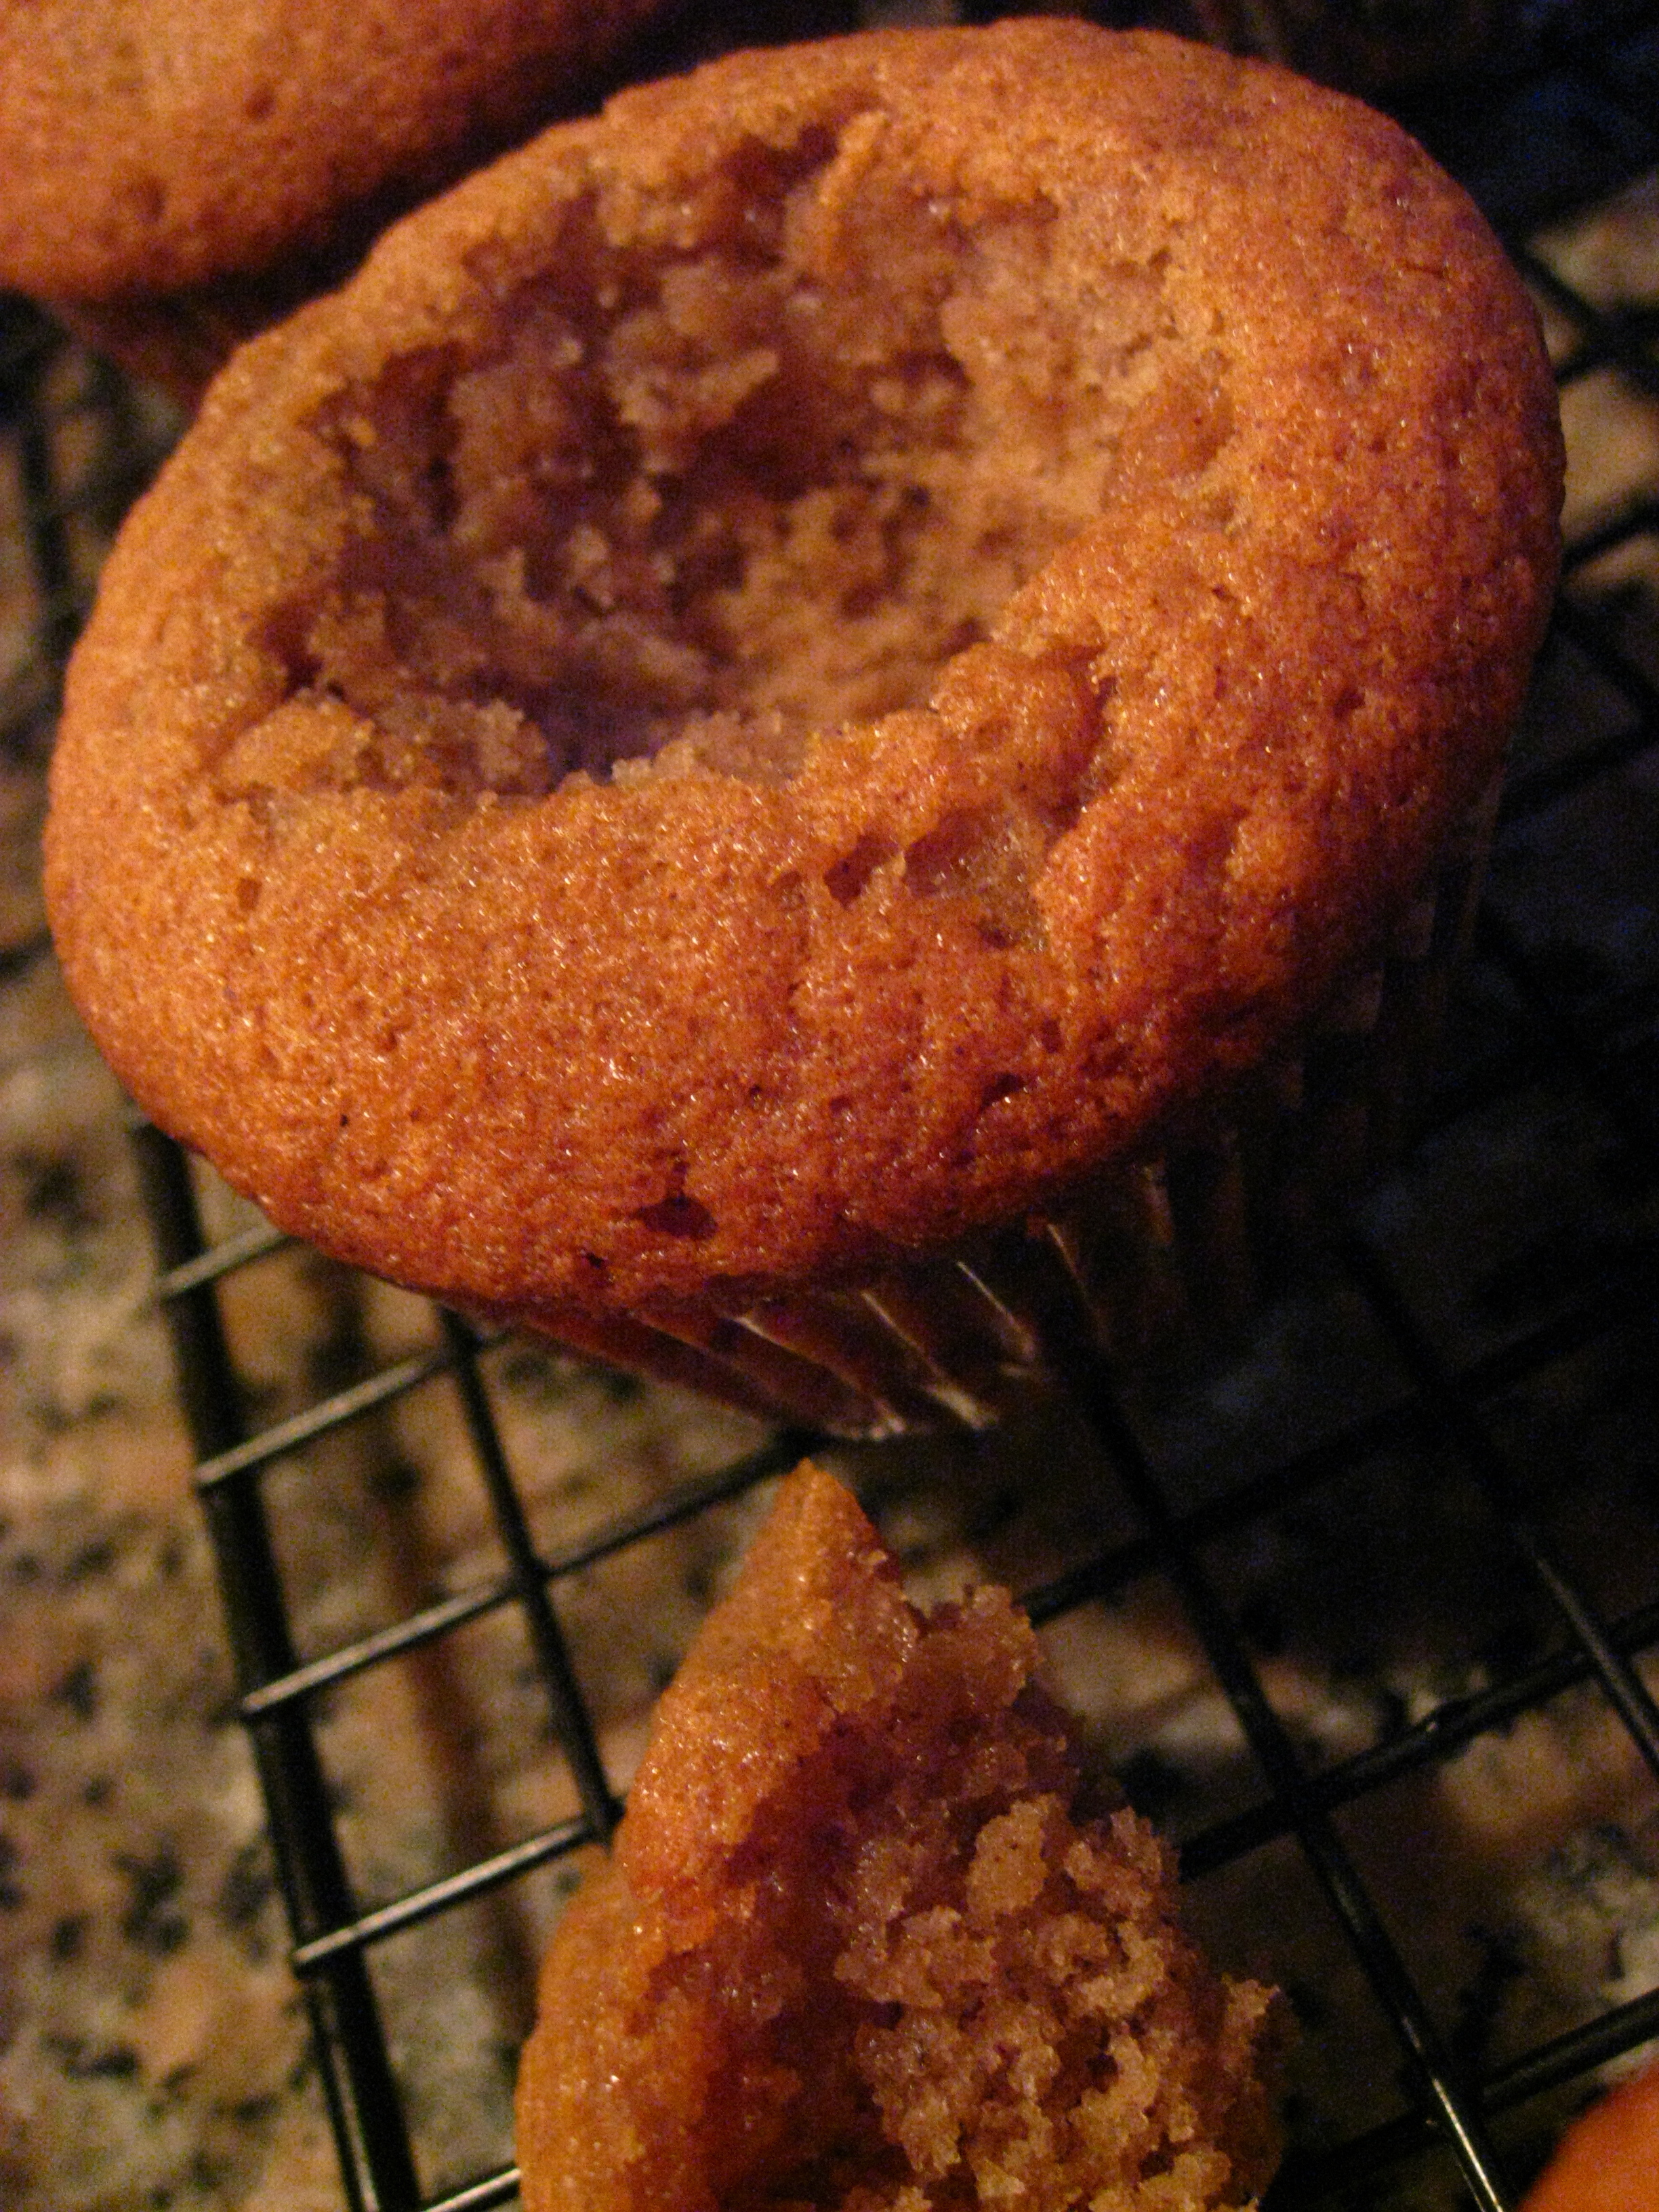 52 Weeks of Baking: Week 52 — Gooey Banana Cupcakes